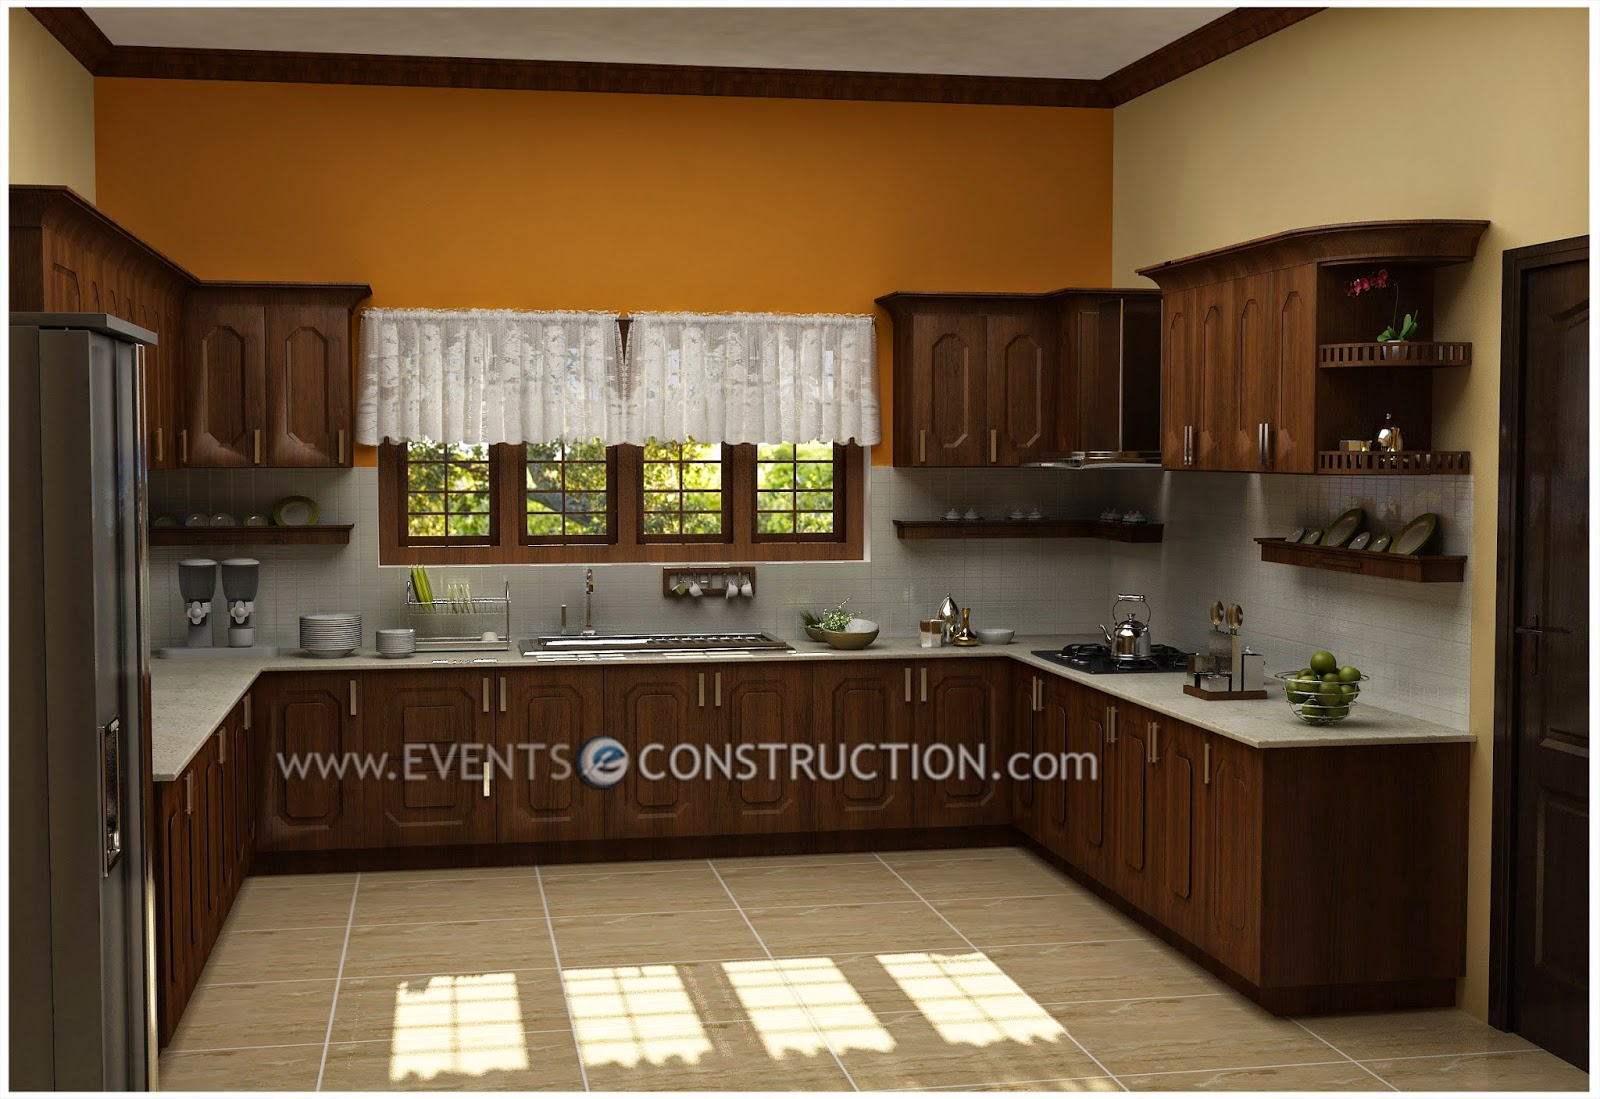 Kitchen Design Kerala Style small kitchen design in kerala style and kerala  style wooden decorSmall Kitchen Design In Kerala Style And Kerala Style Wooden Decor  . Latest Kitchen Designs In Kerala. Home Design Ideas